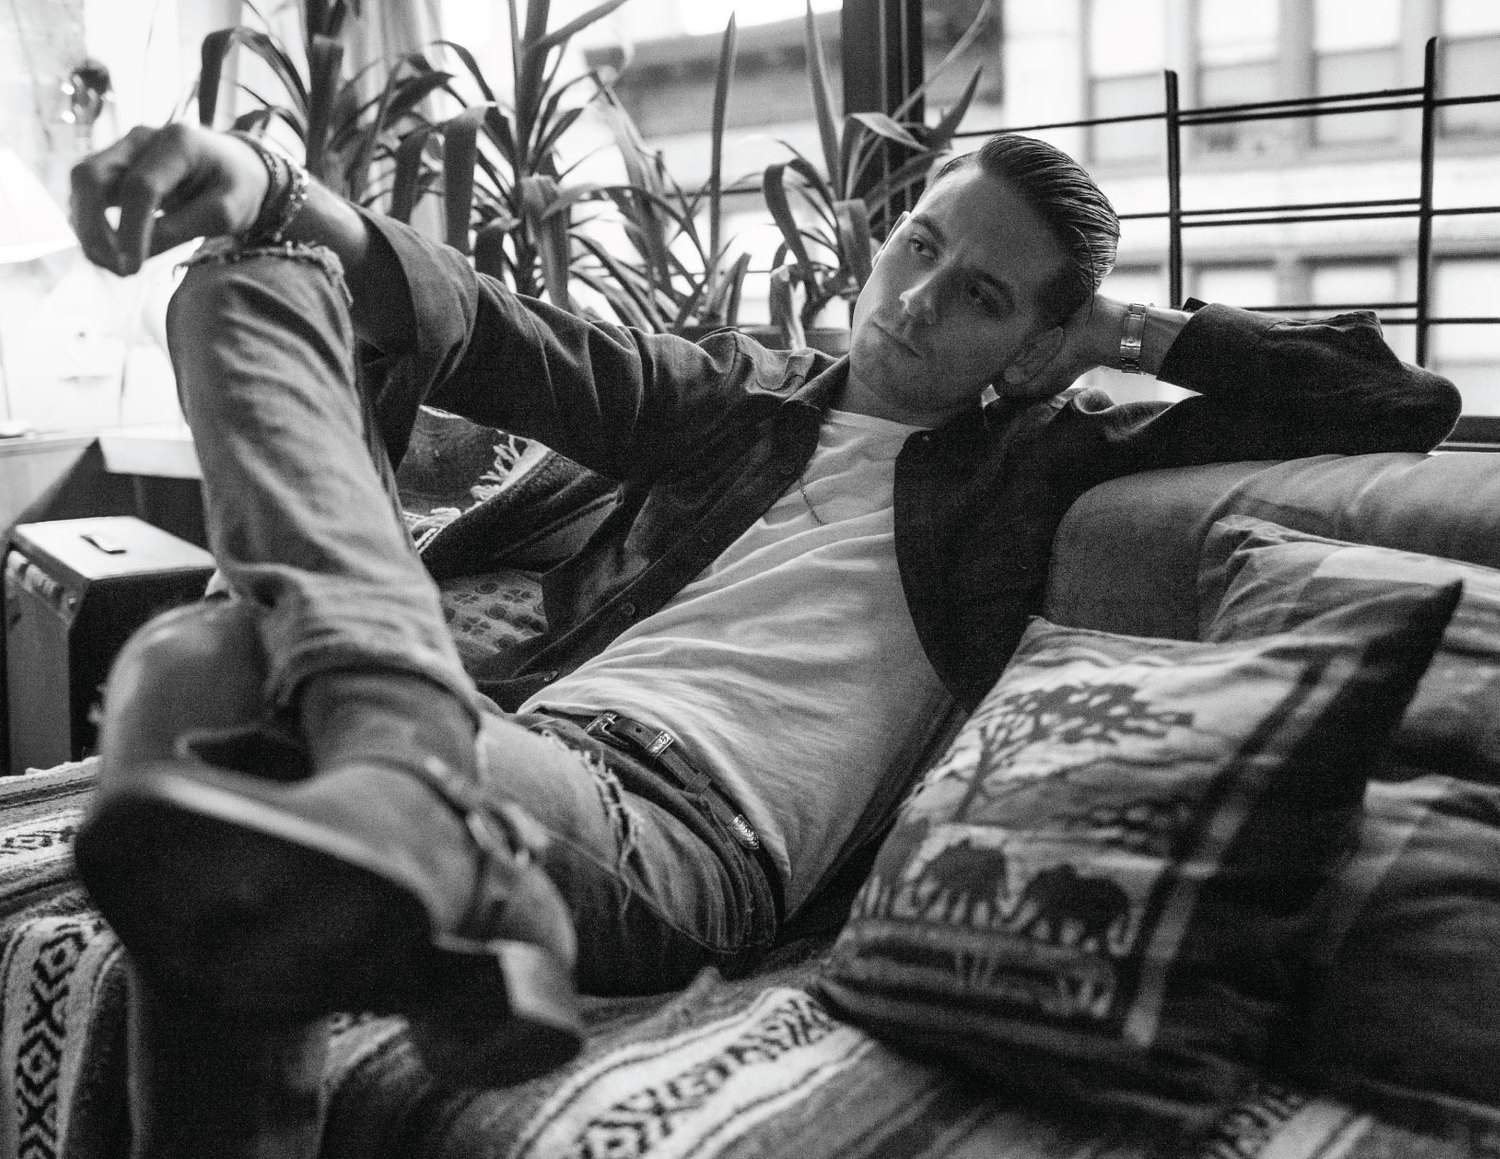 G-Eazy photo 22 of 414 pics, wallpaper - photo #924381 - ThePlace2